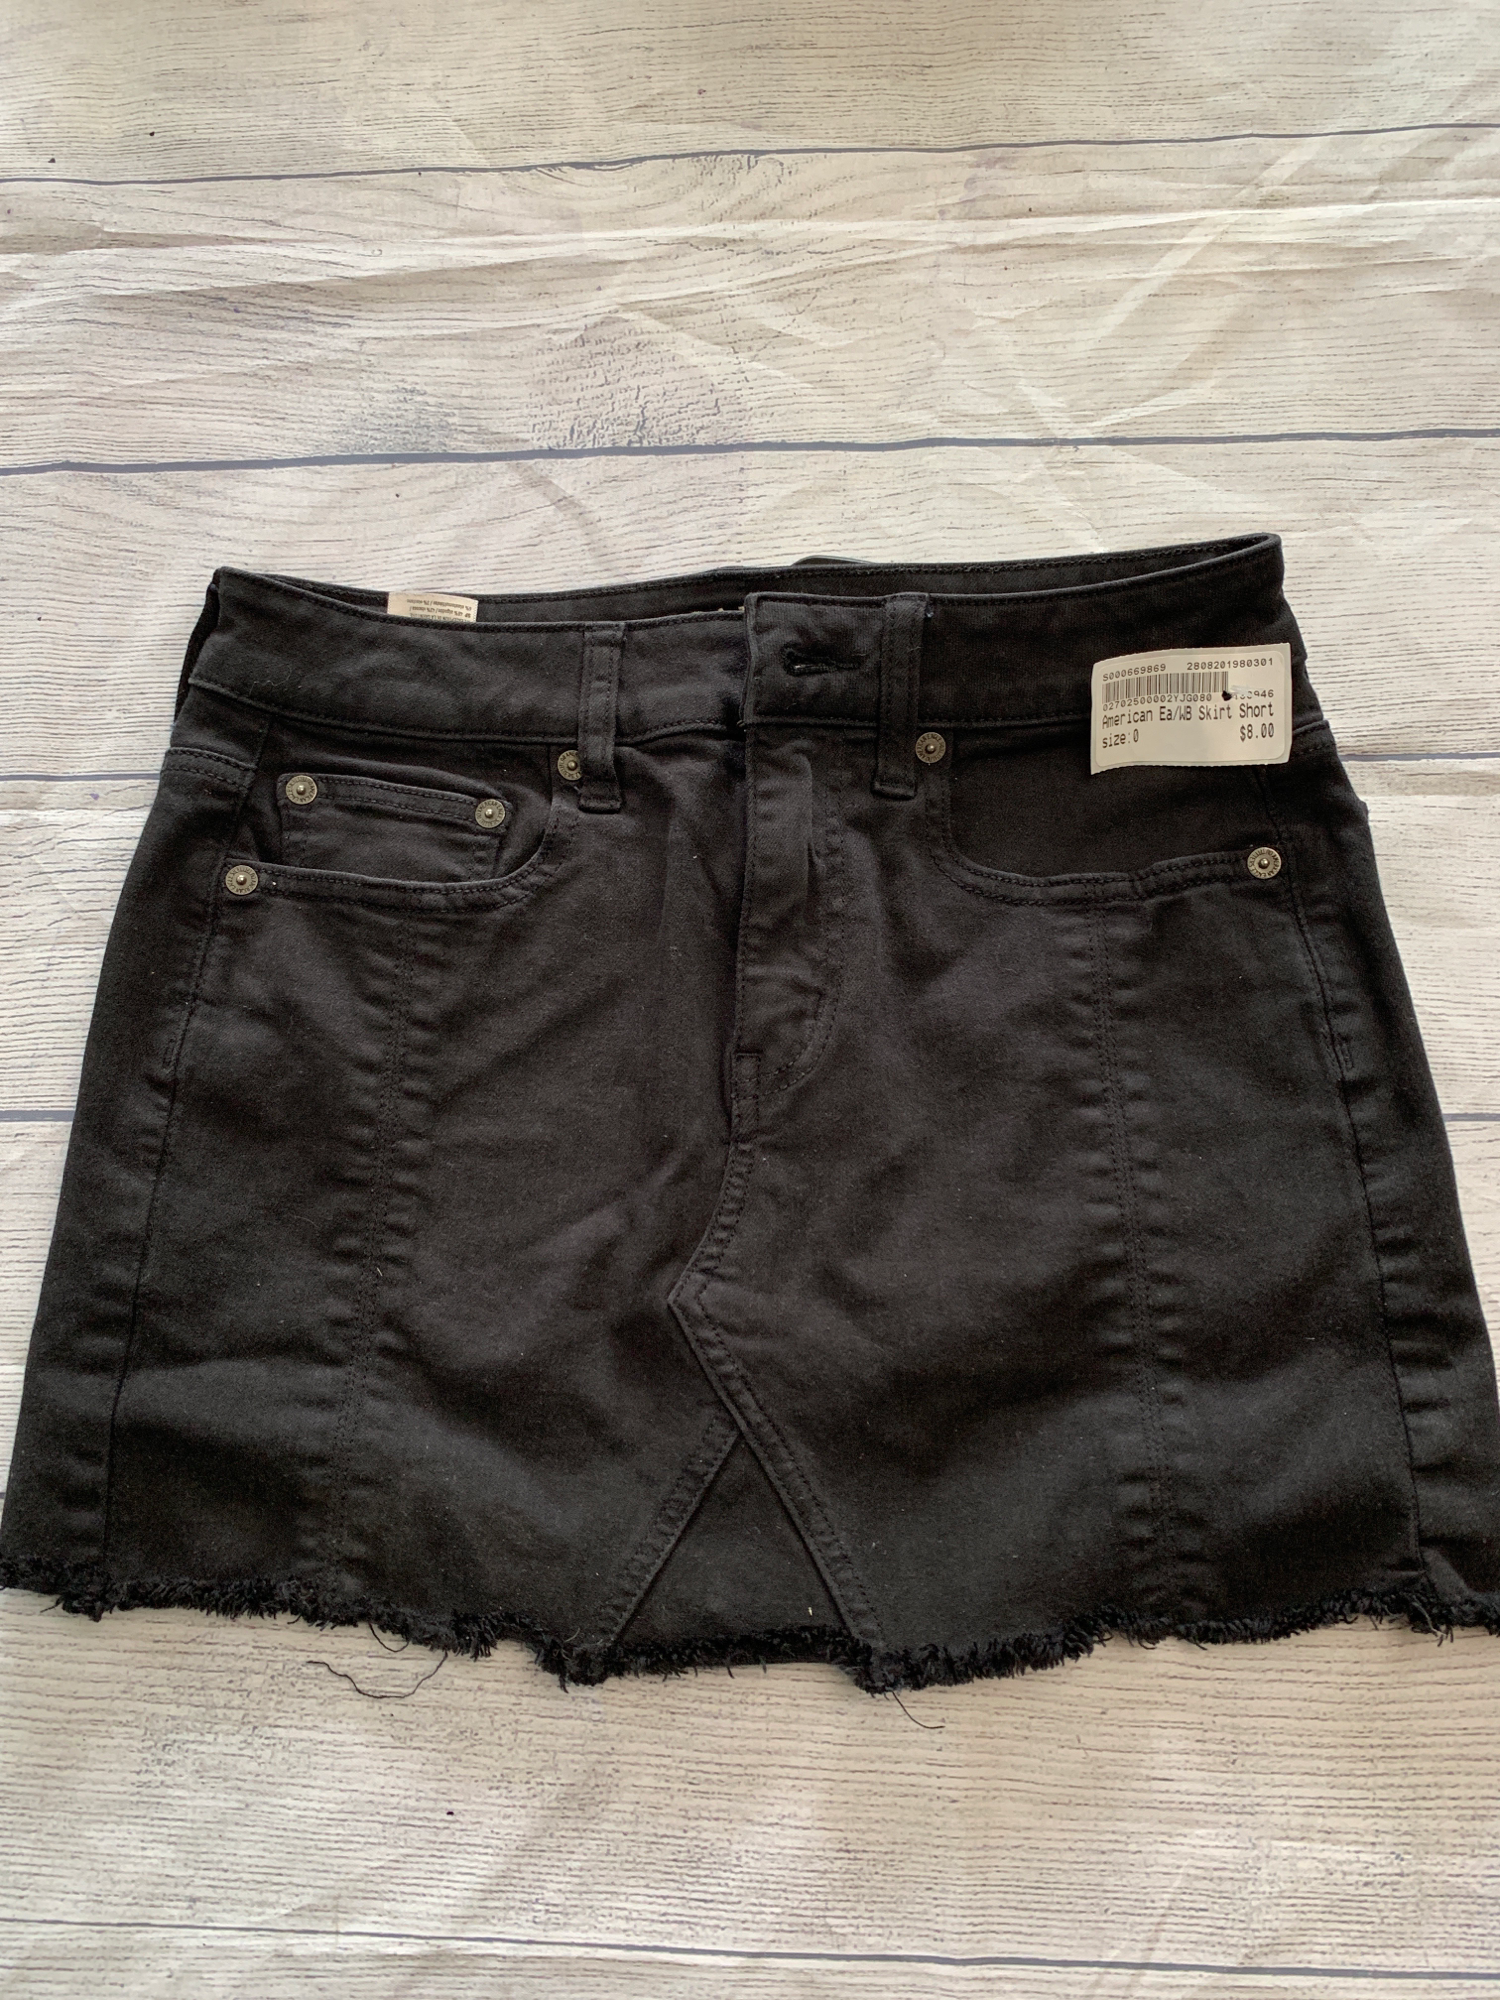 American Eagle Short Skirt Size 0 - Plato's Closet